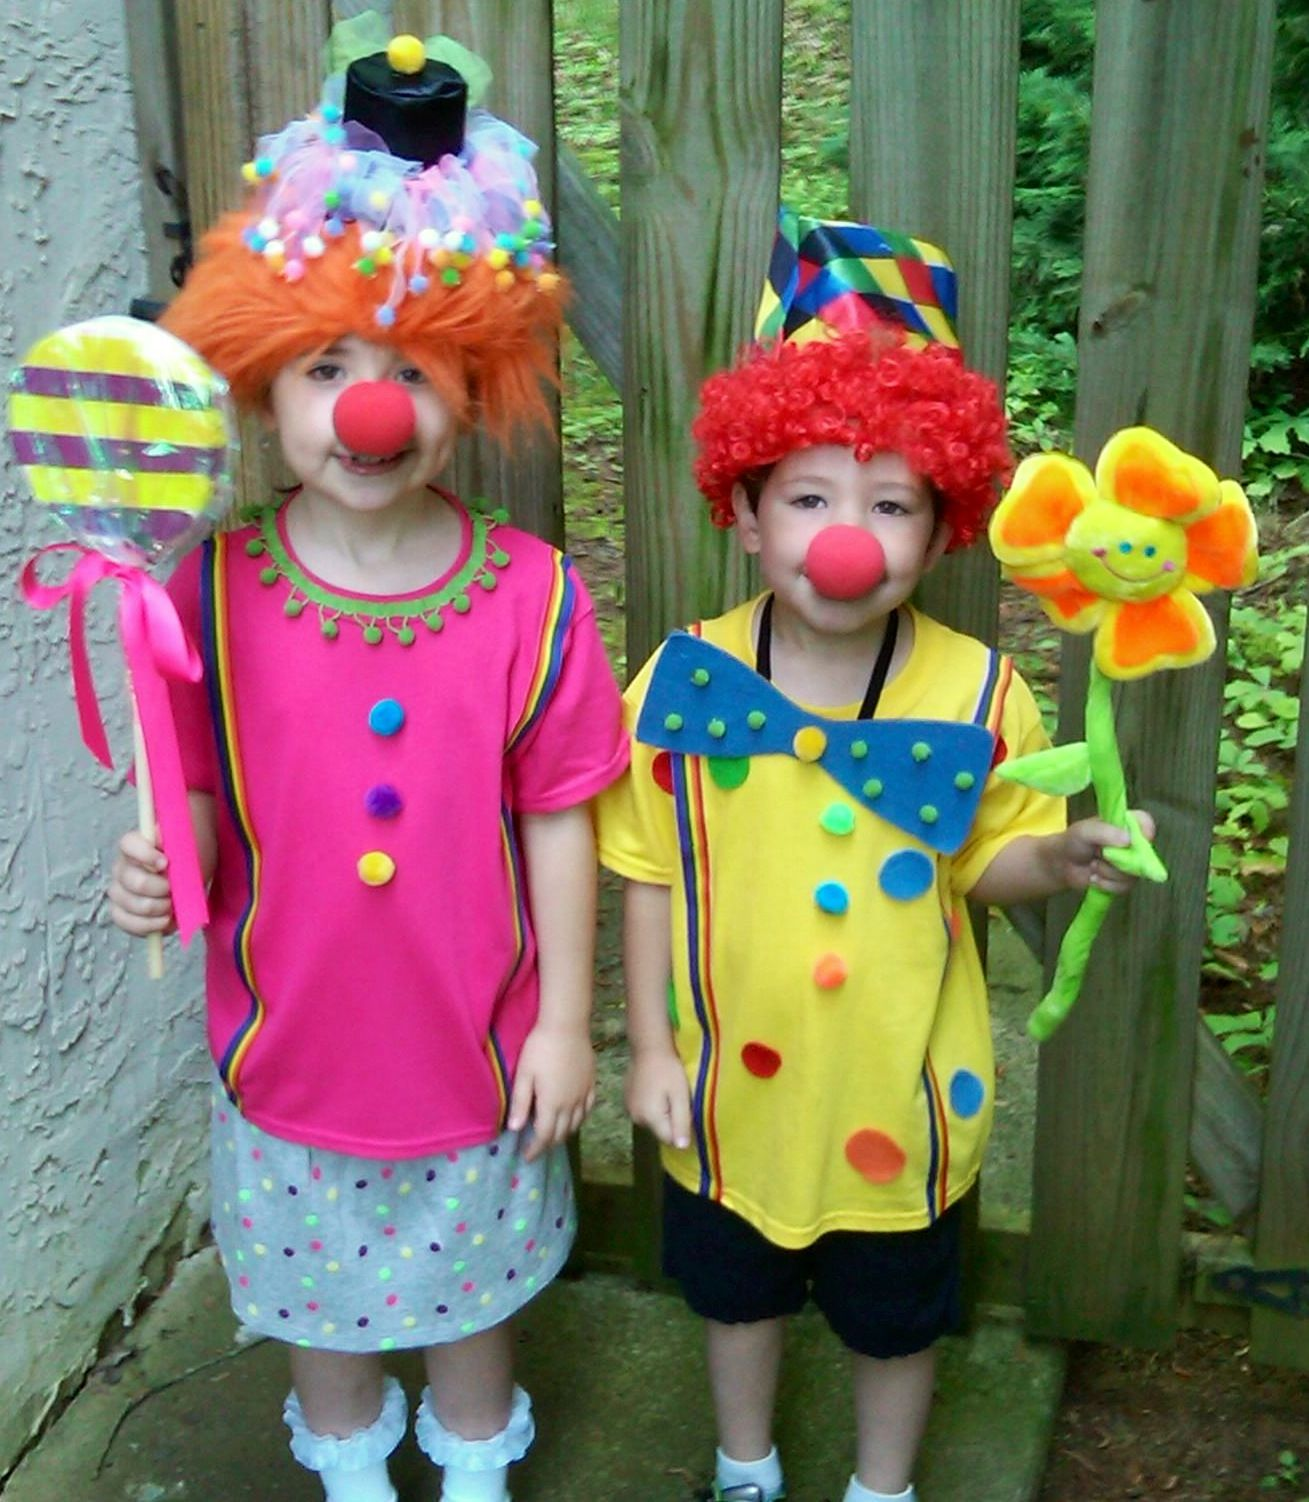 homemade clown costumes crafty goodness pinterest costumes